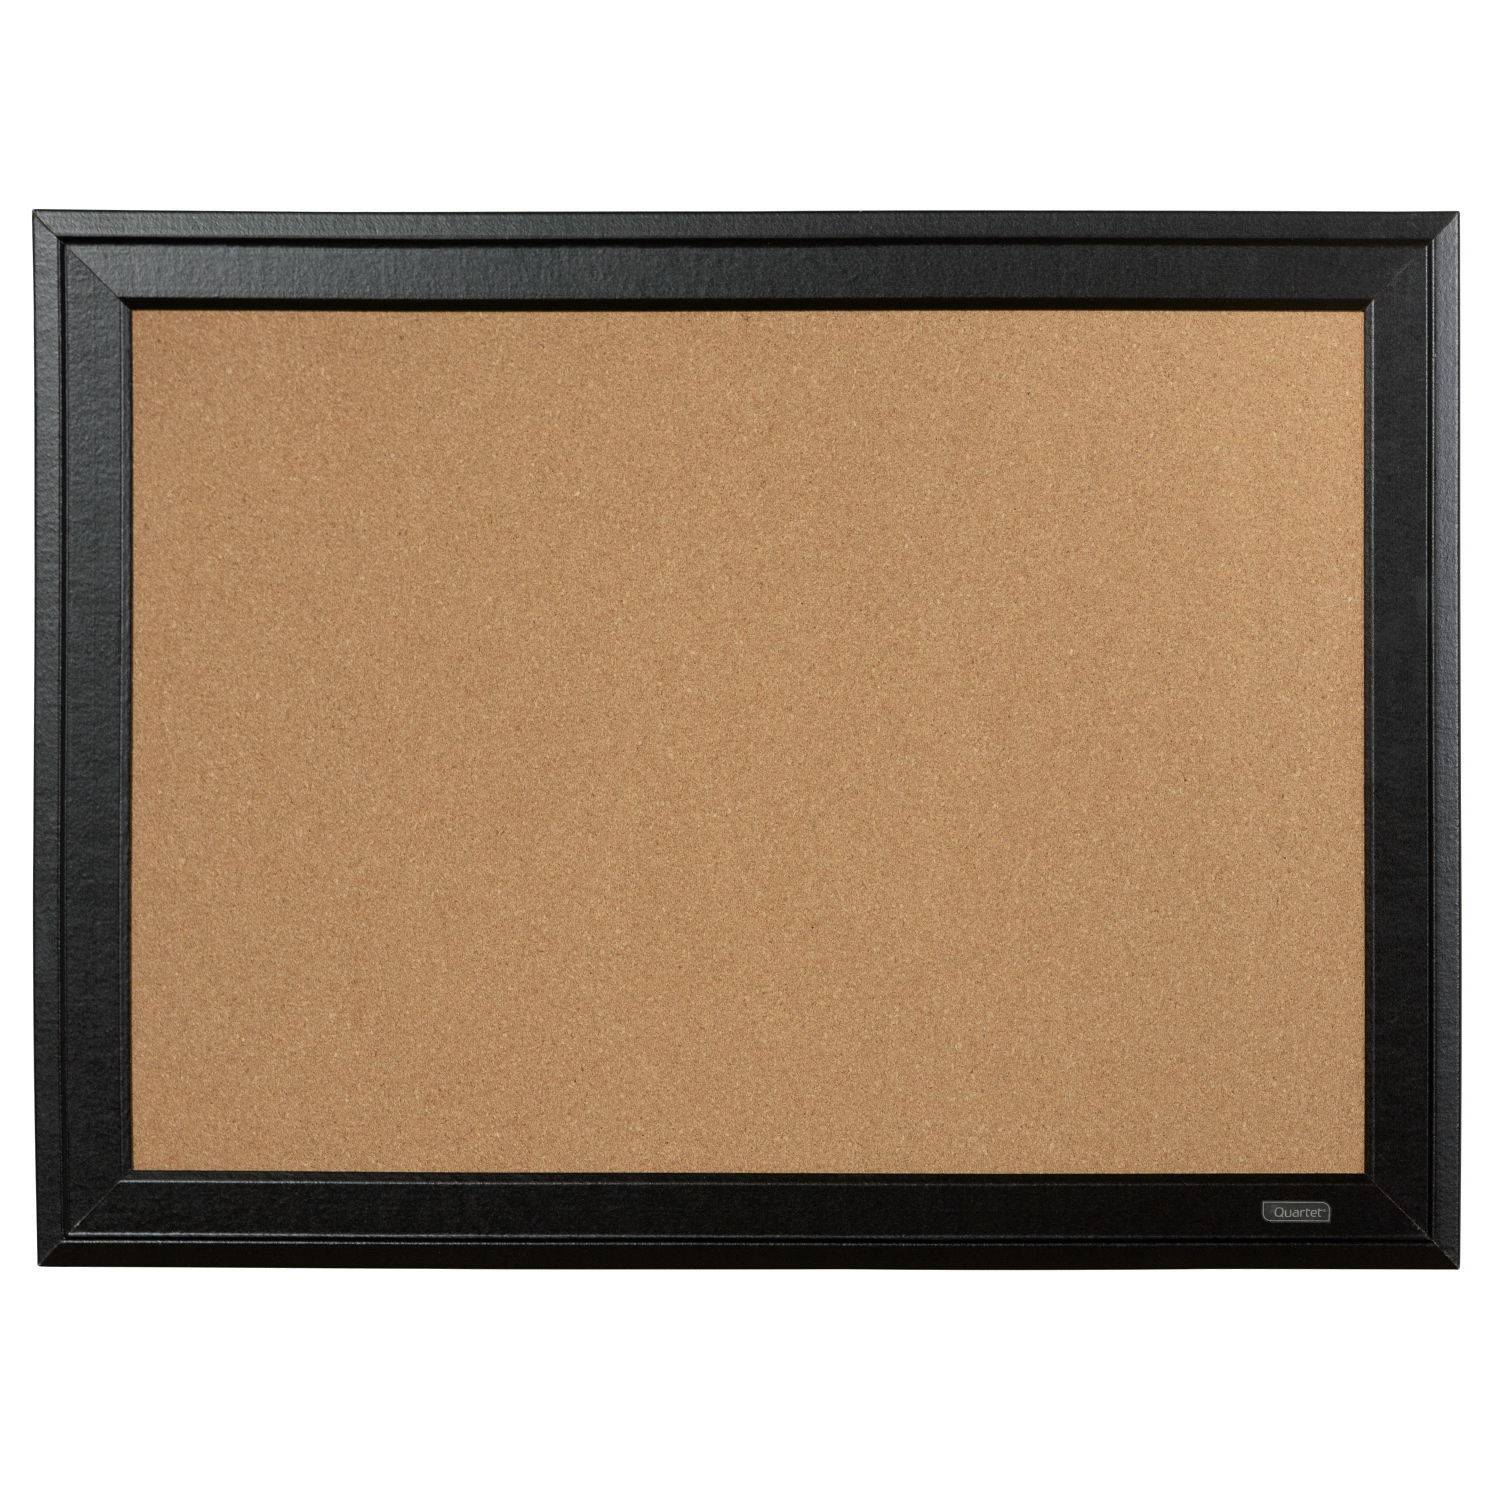 Quartet Cork Board Black Frame 585x430mm